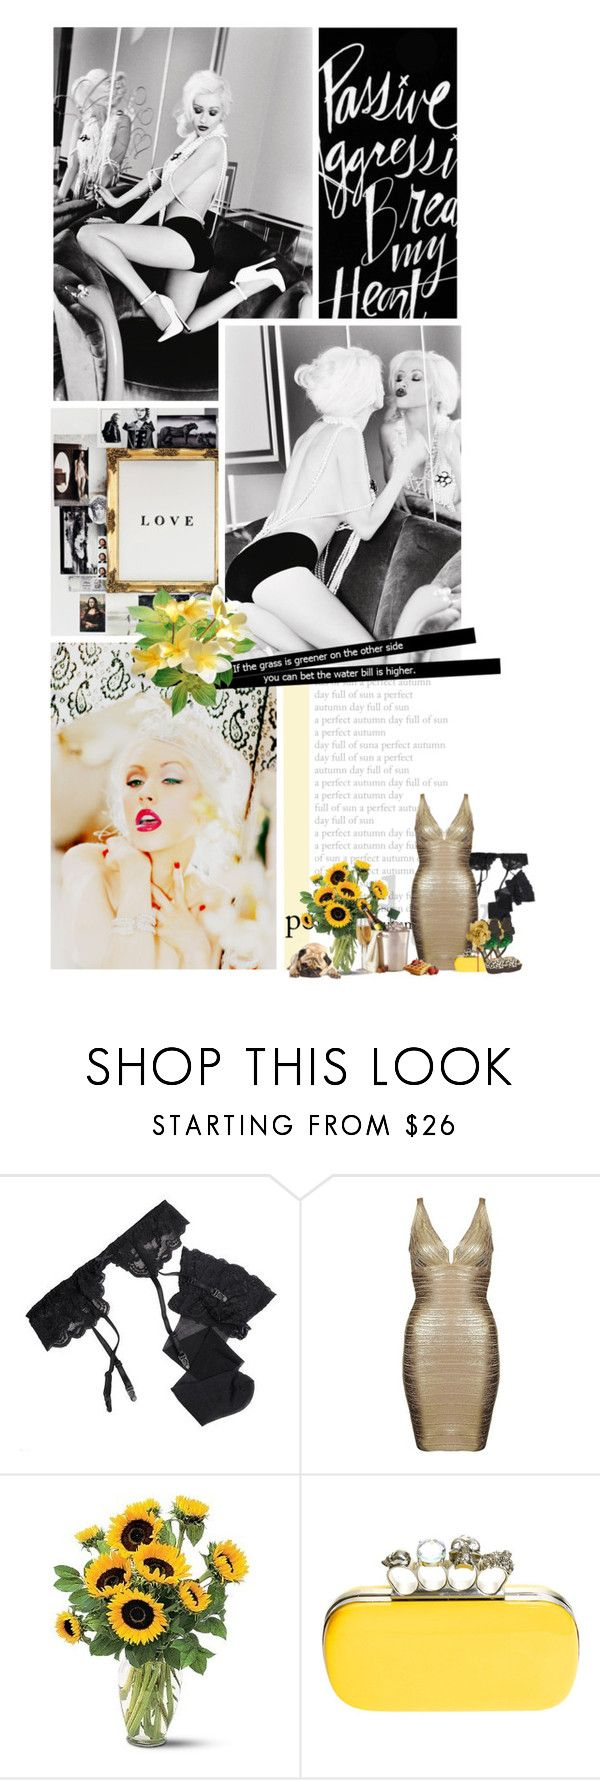 """""""Christina Aguilera"""" by mrsvalo ❤ liked on Polyvore featuring Reger by Janet Reger, Hervé Léger, Jimmy Choo, singer, herve leger, sexy, christina aguilera and gold dress"""